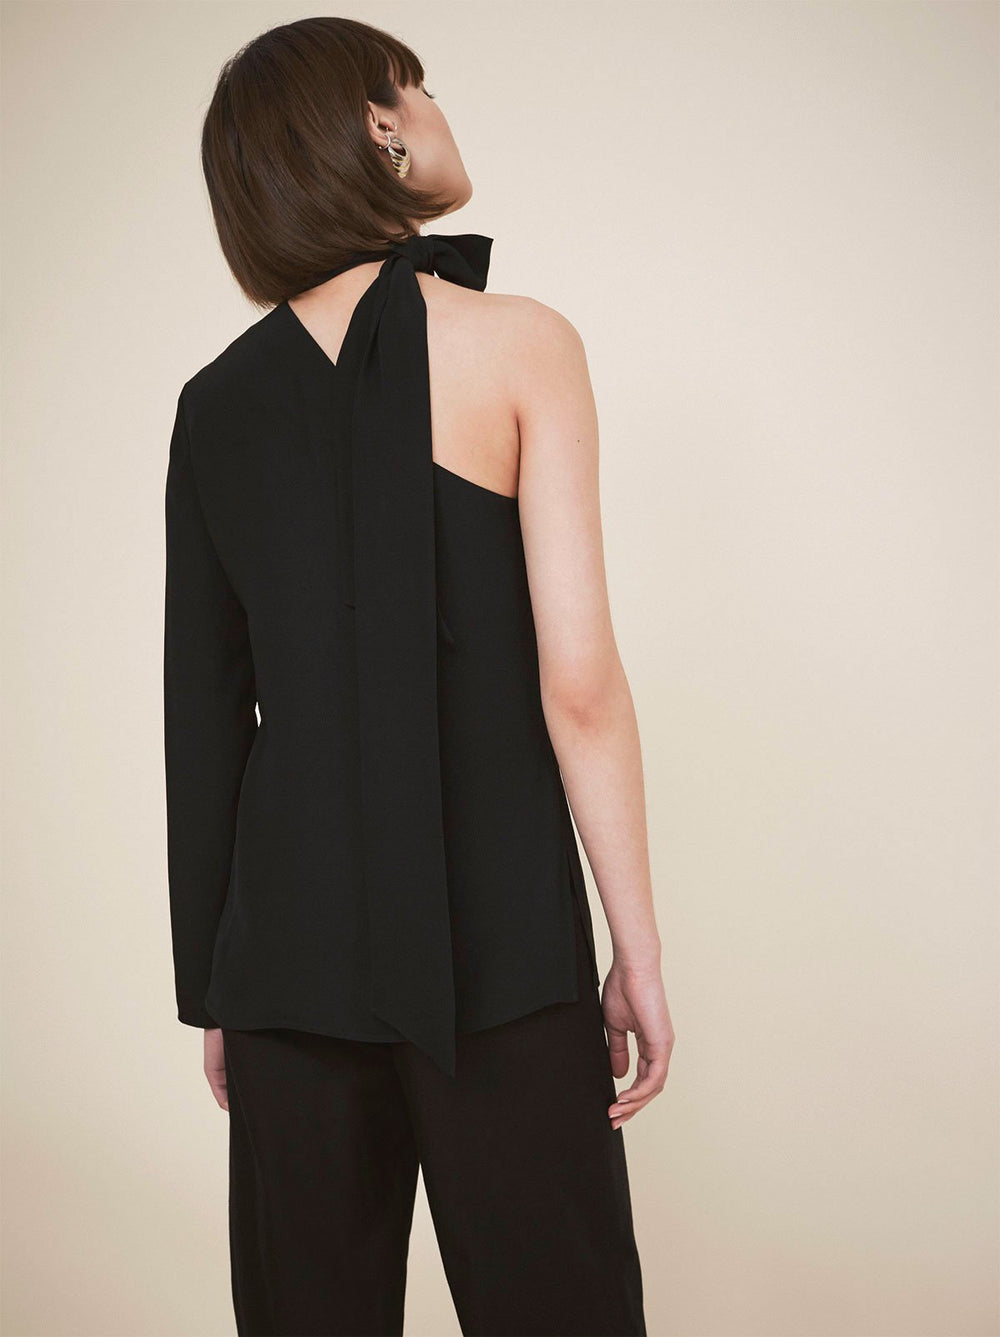 Fonteyn Black Scarf Top | Women's Tops by KITRI Studio